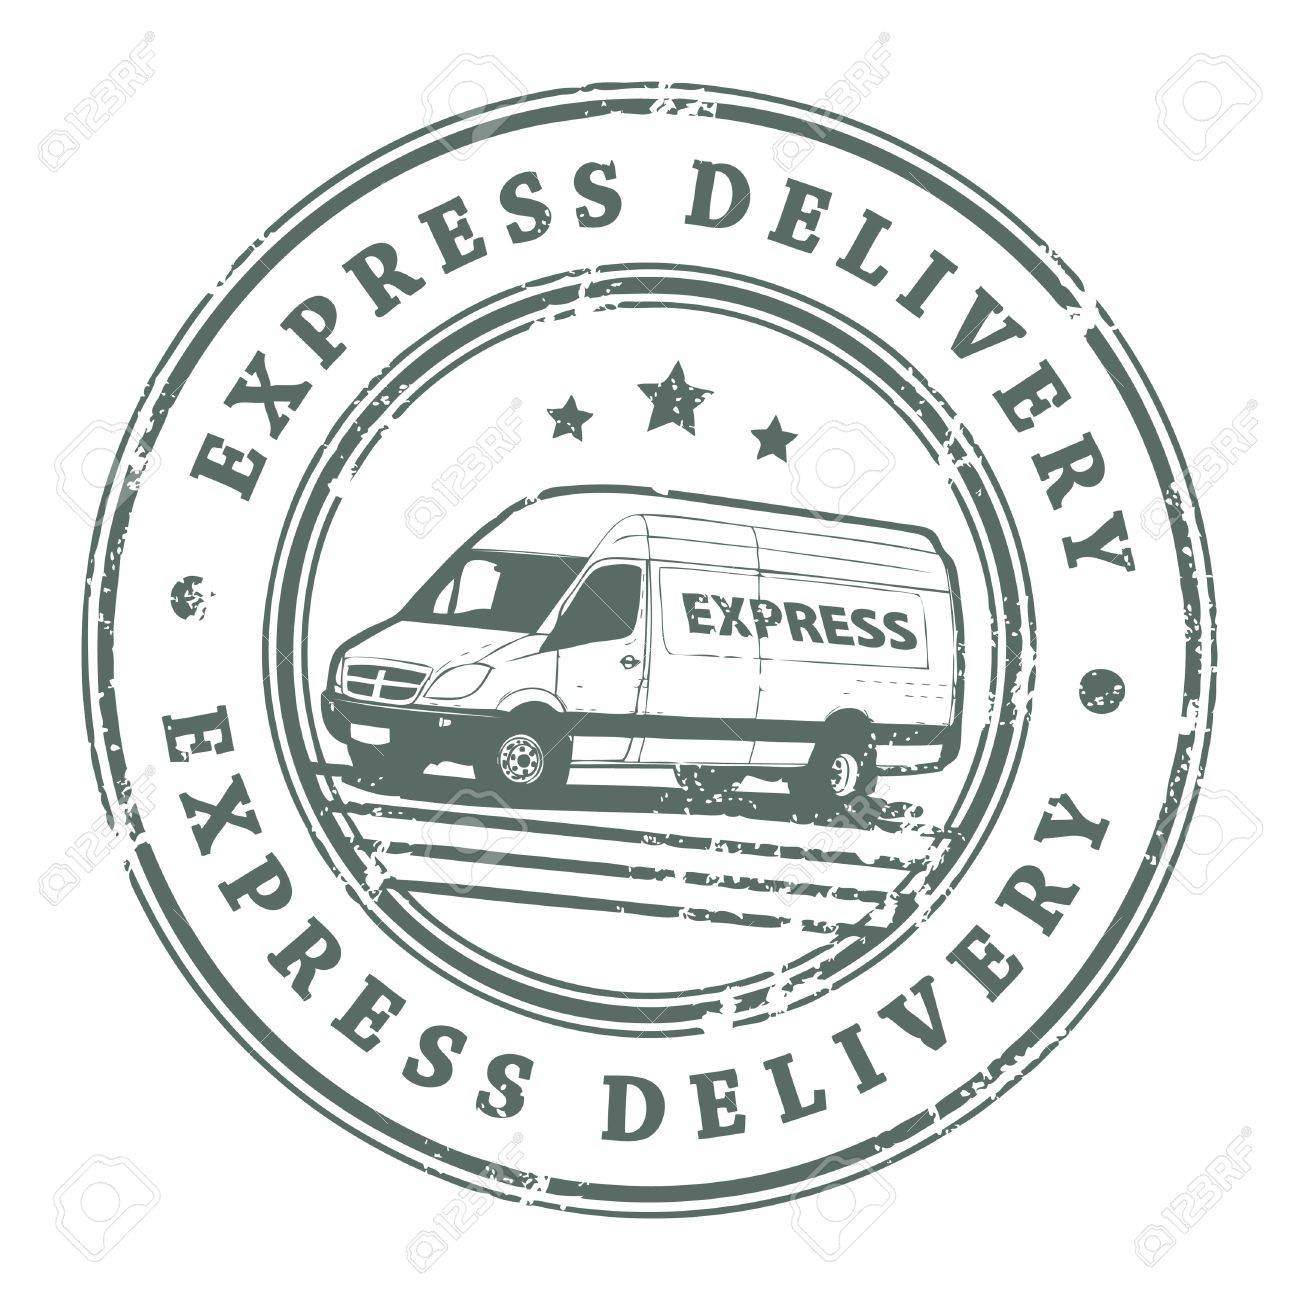 Grunge rubber stamp with a delivery car in the middle and the text express delivery written inside the stamp - 14170019